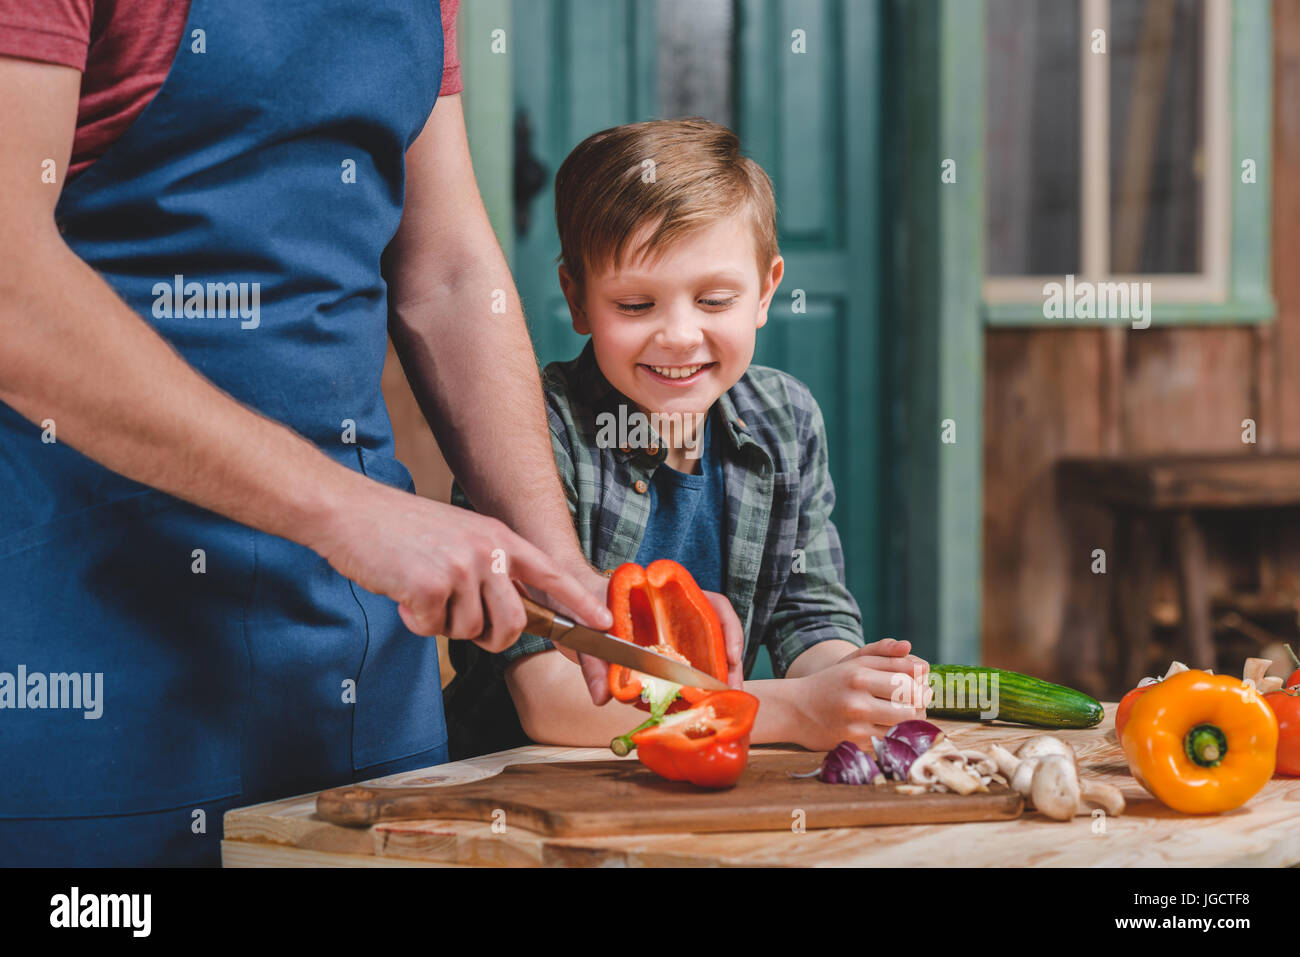 Cute little boy looking at father cutting vegetables on cutting board, dad and son cooking concept - Stock Image